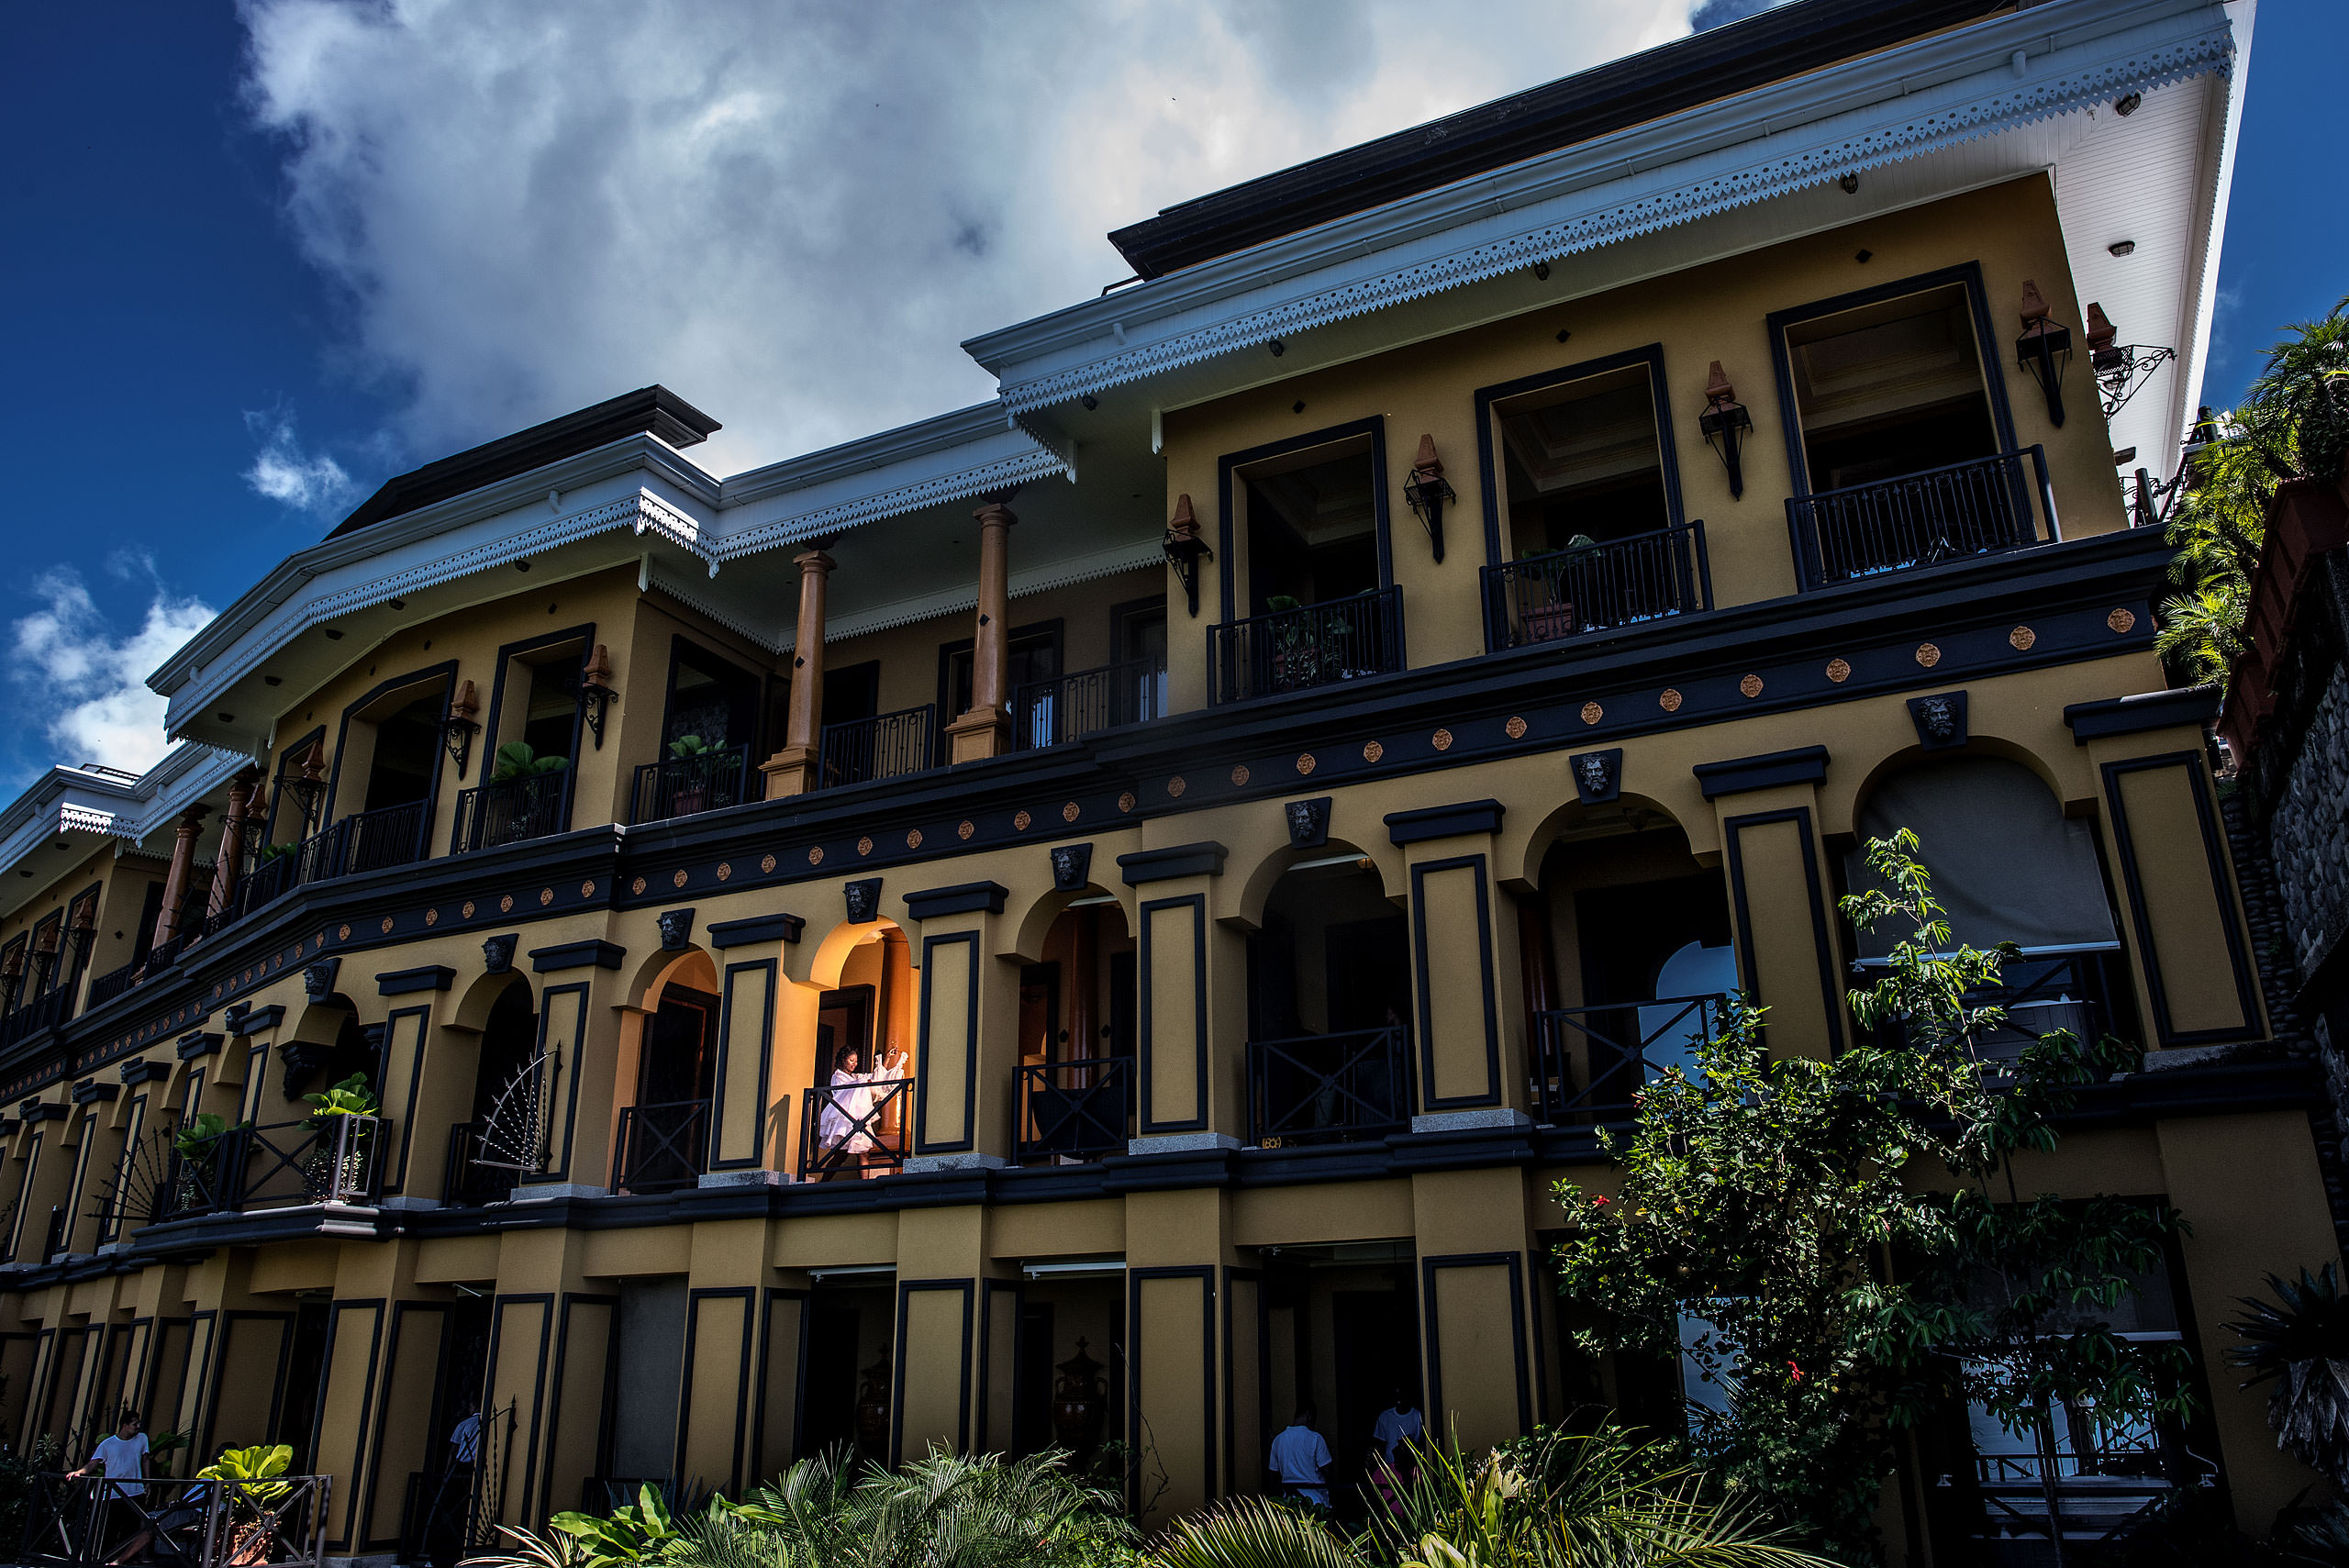 a bride walking with her dress on a balcony at Zephyr Palace Destination Wedding in Costa Rica by Sean LeBlanc